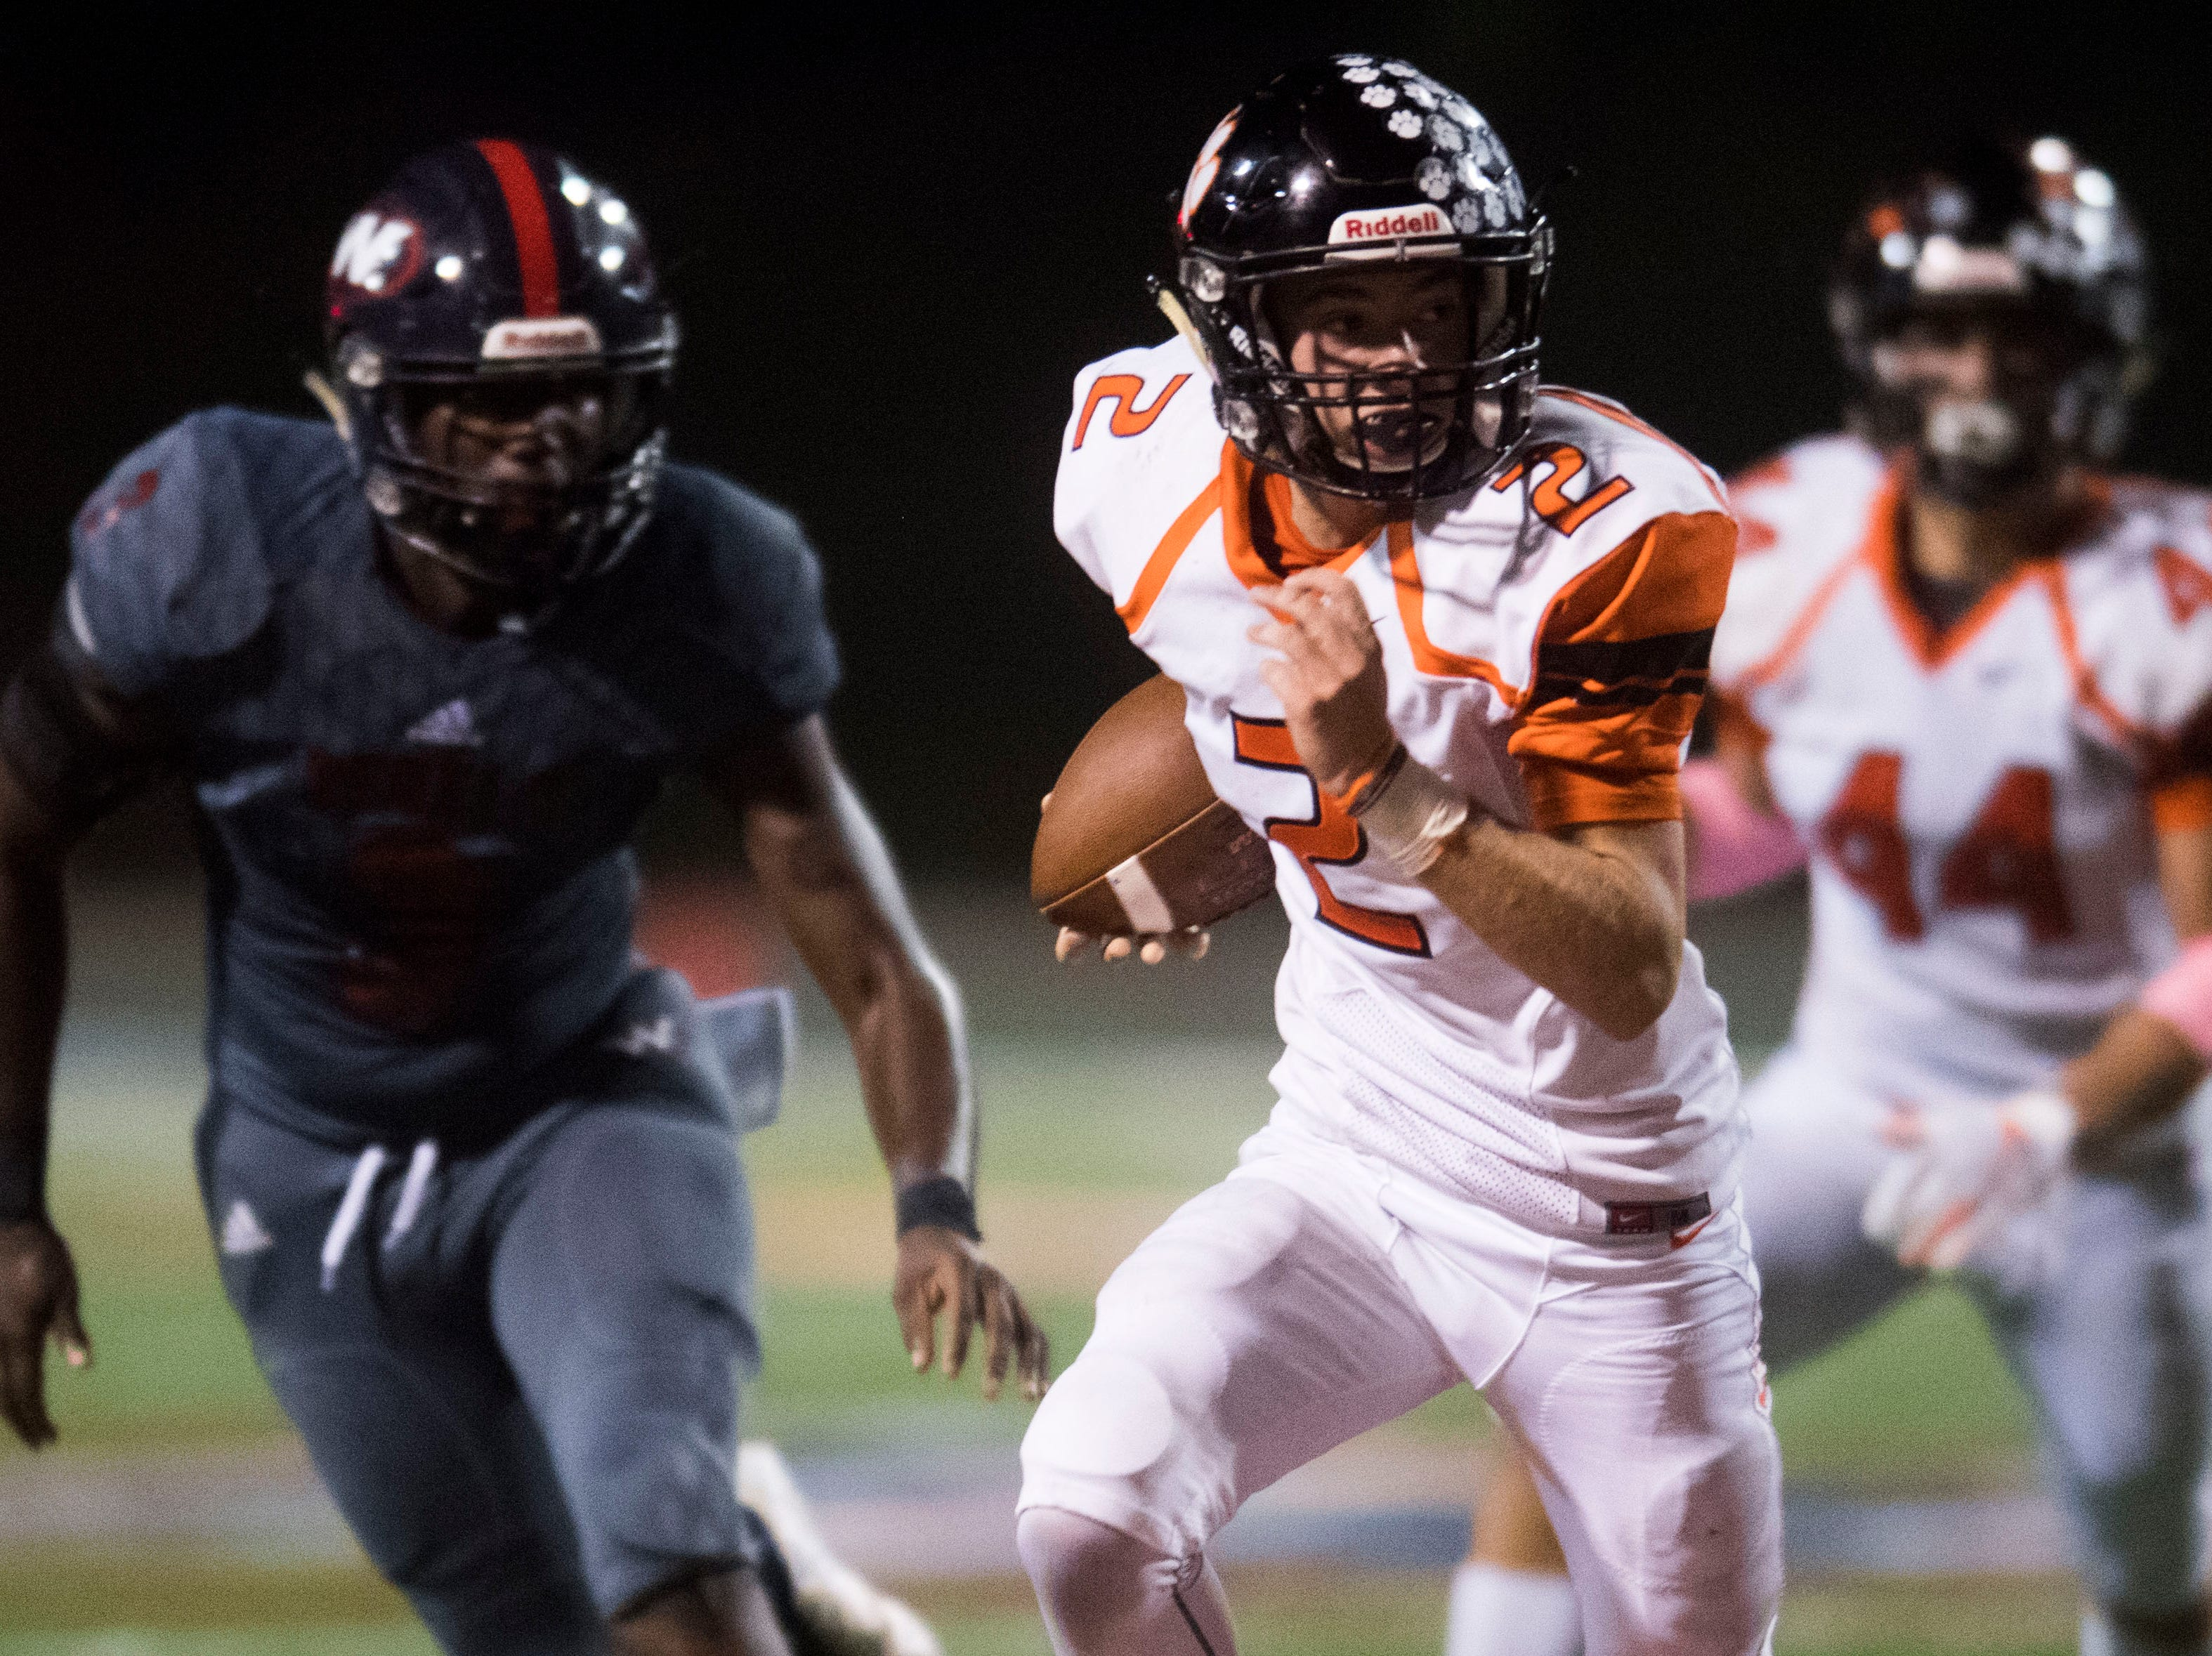 Powell's Deuce Shreve (2) runs the ball during a game between West and Powell at West, Friday, Oct. 5, 2018. Powell defeated West 36-21.